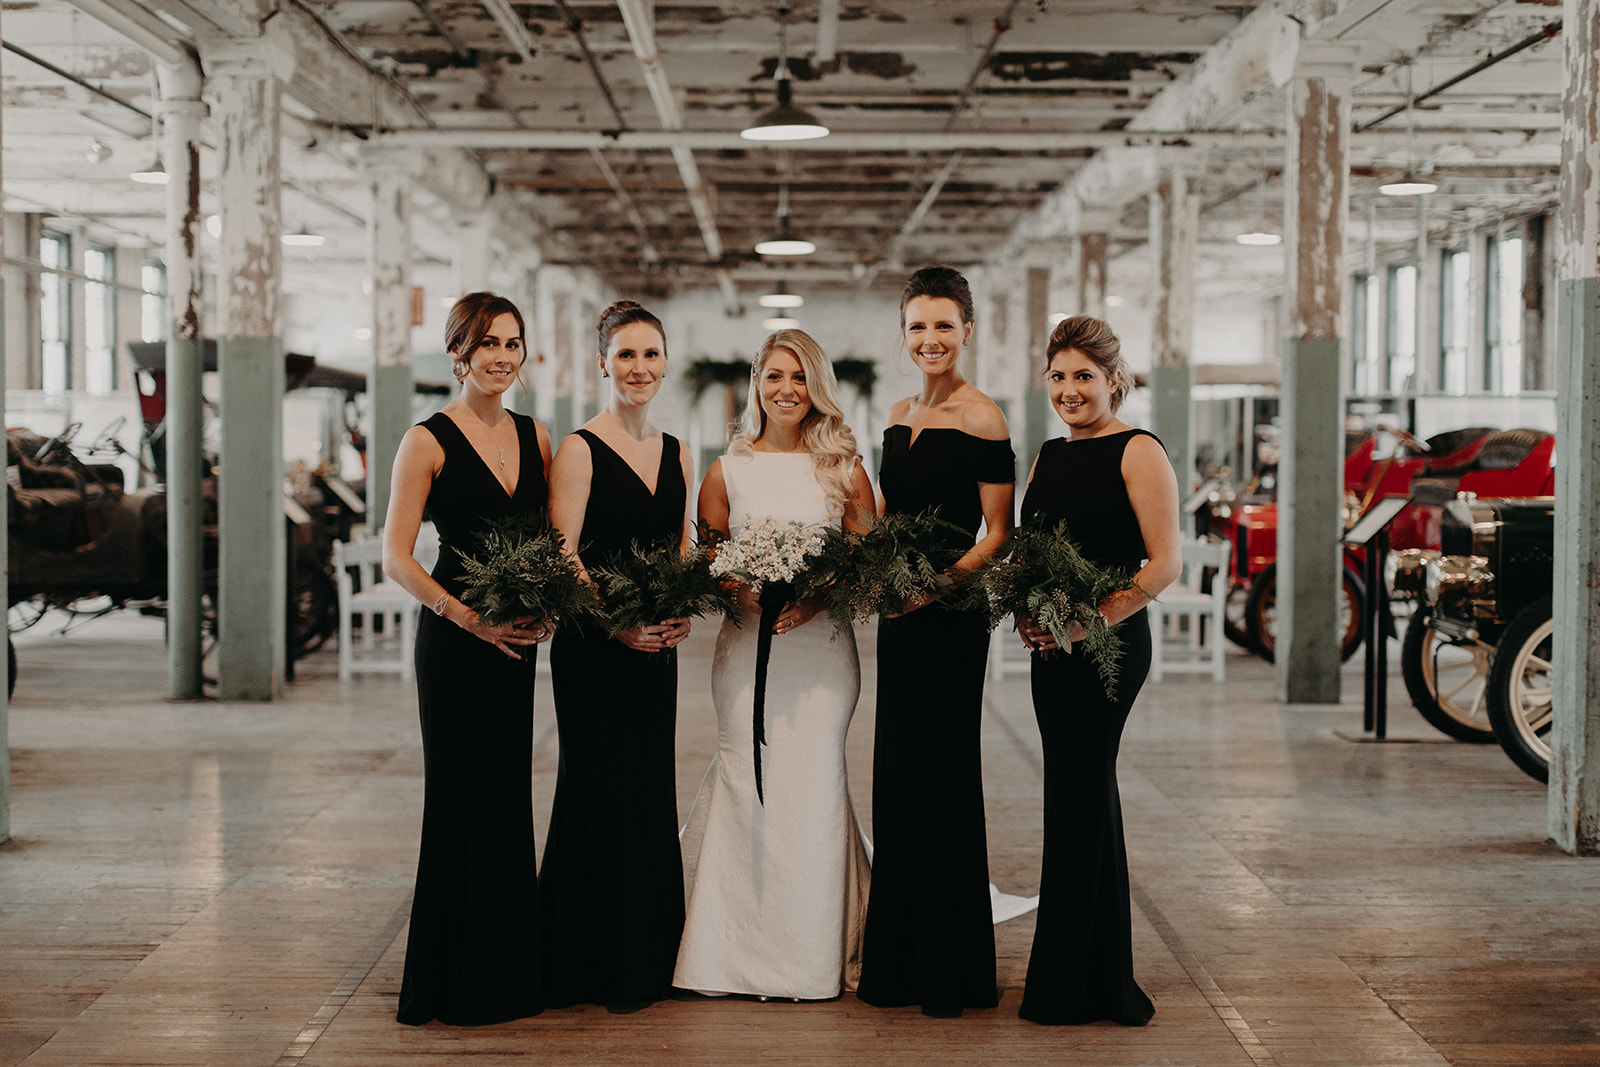 custom wedding planners detroit michigan event design paper goods florals bridal party bridesmaids bouquets